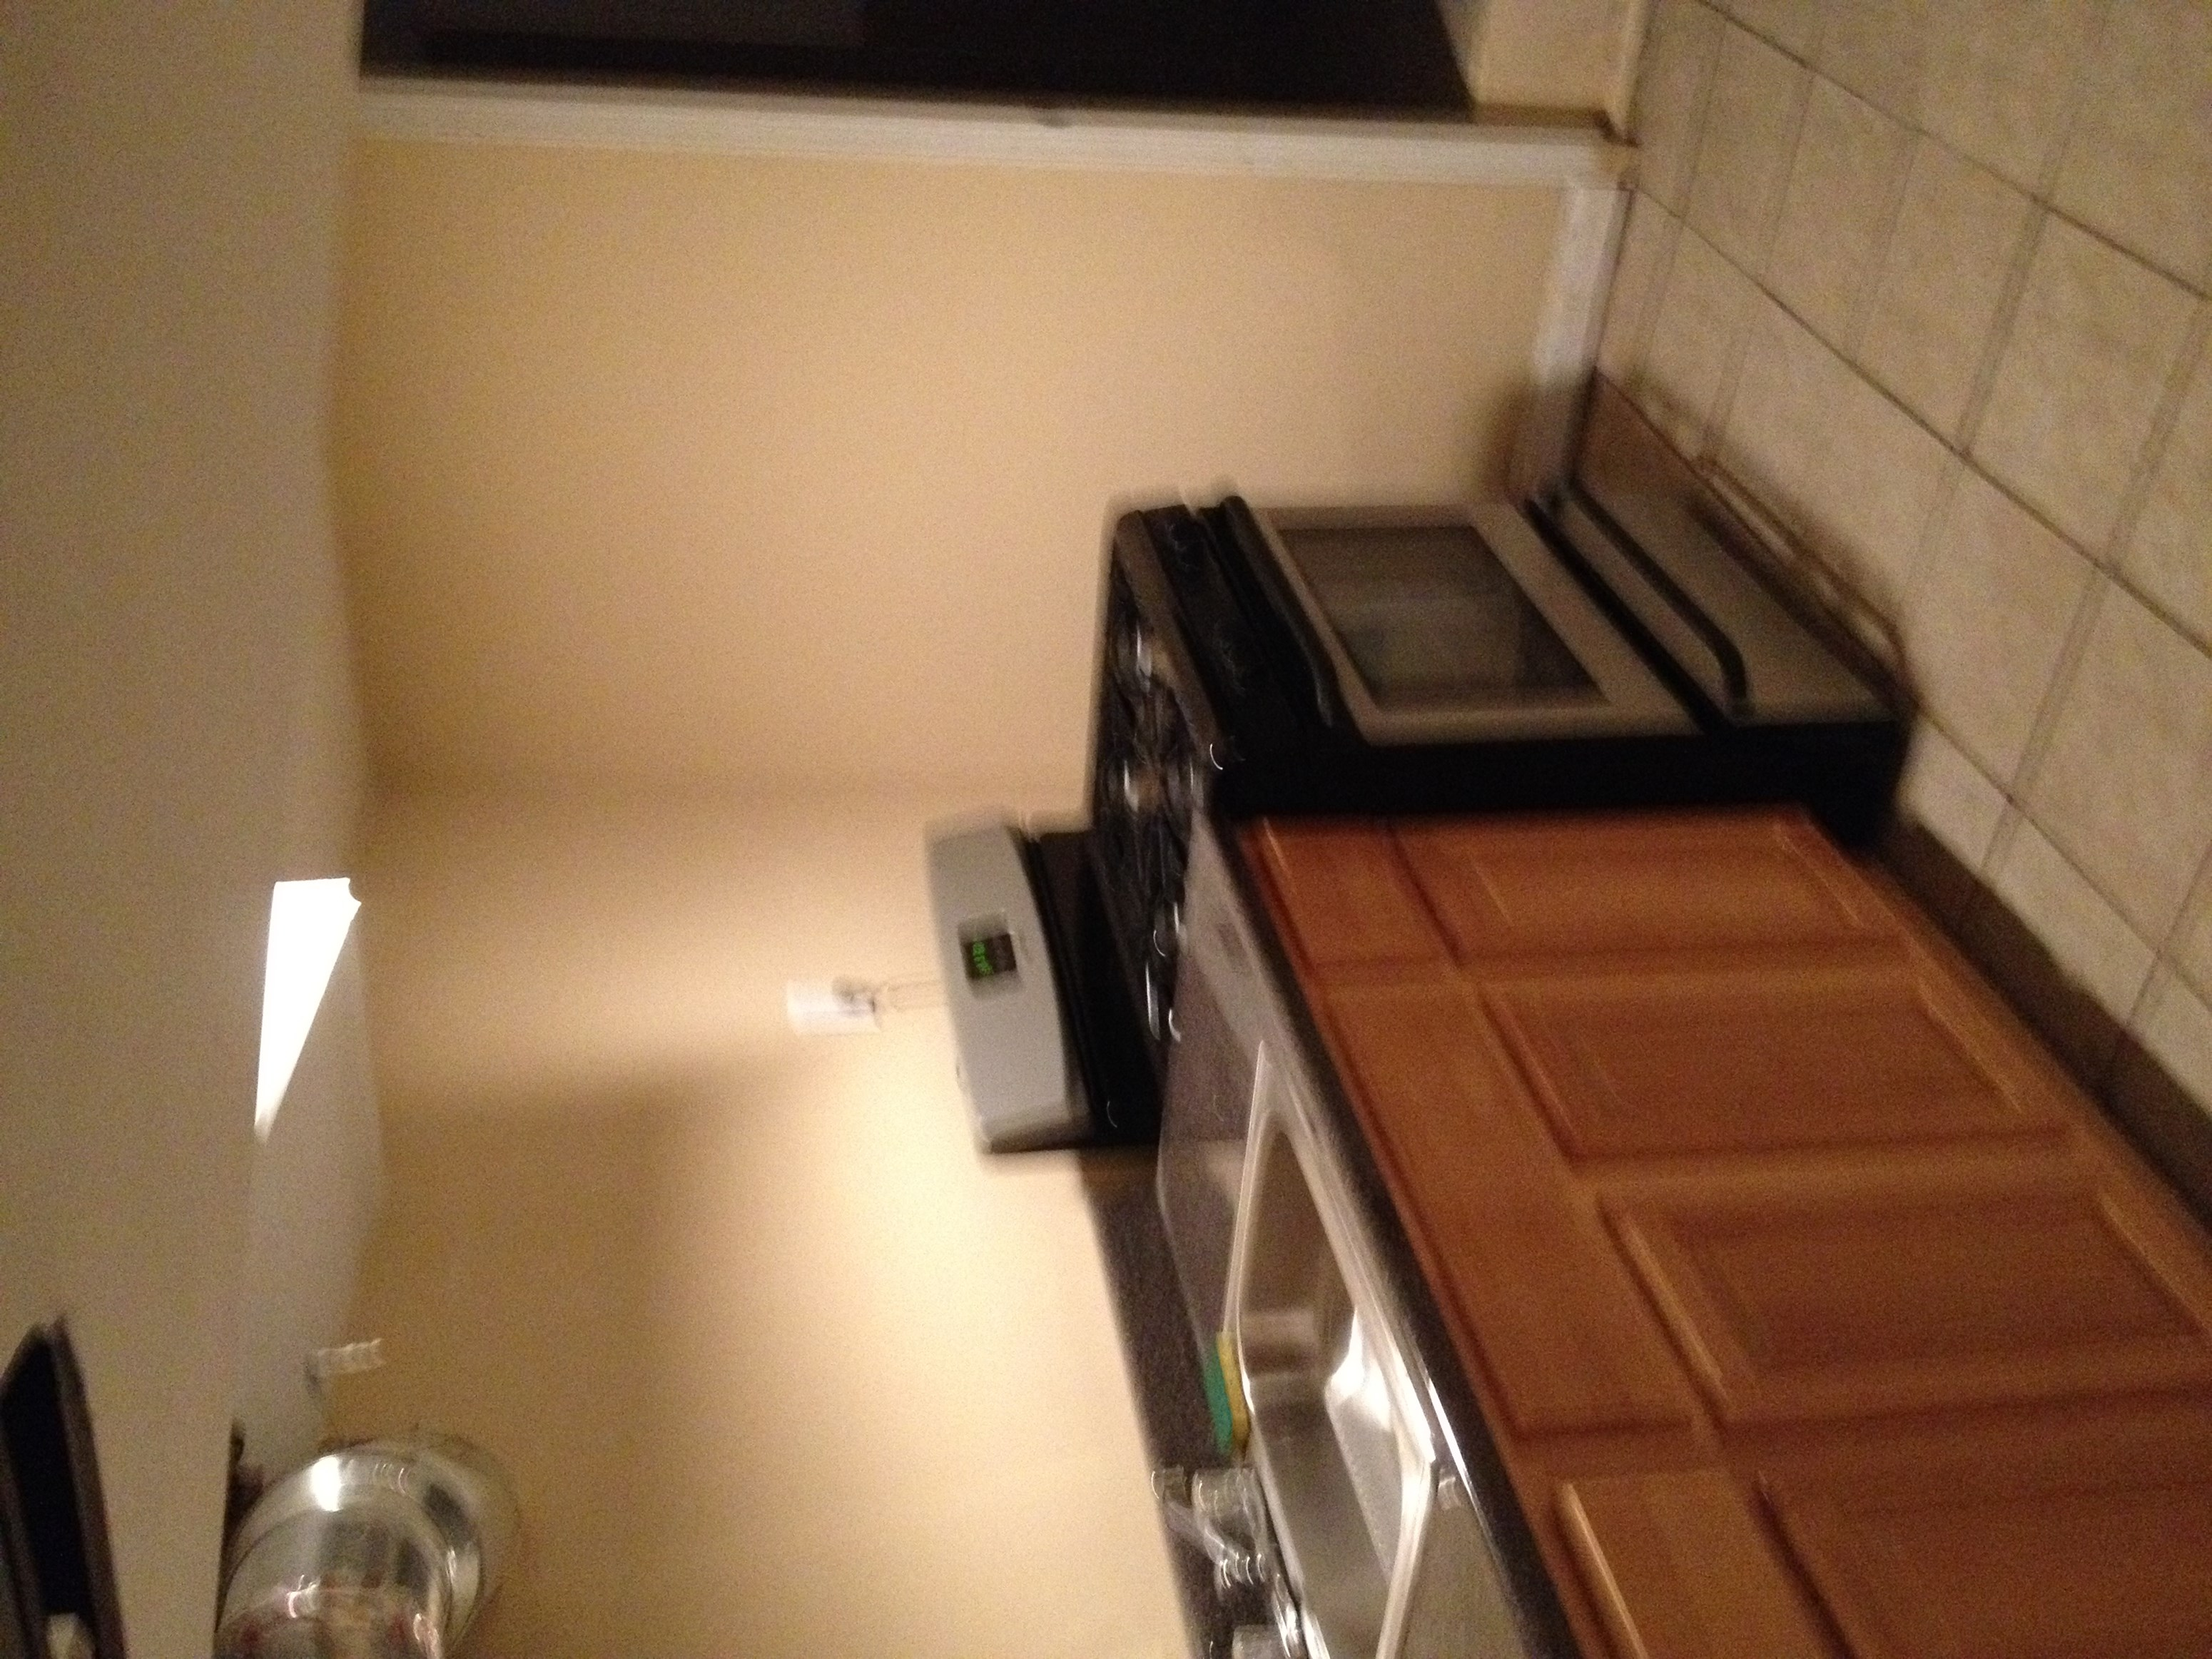 Completely Furnished Apartment 2 Blocks Away From JSQ Path ALL  Utilities Included   Image 2. Completely Furnished Apartment 2 Blocks Away From JSQ Path ALL